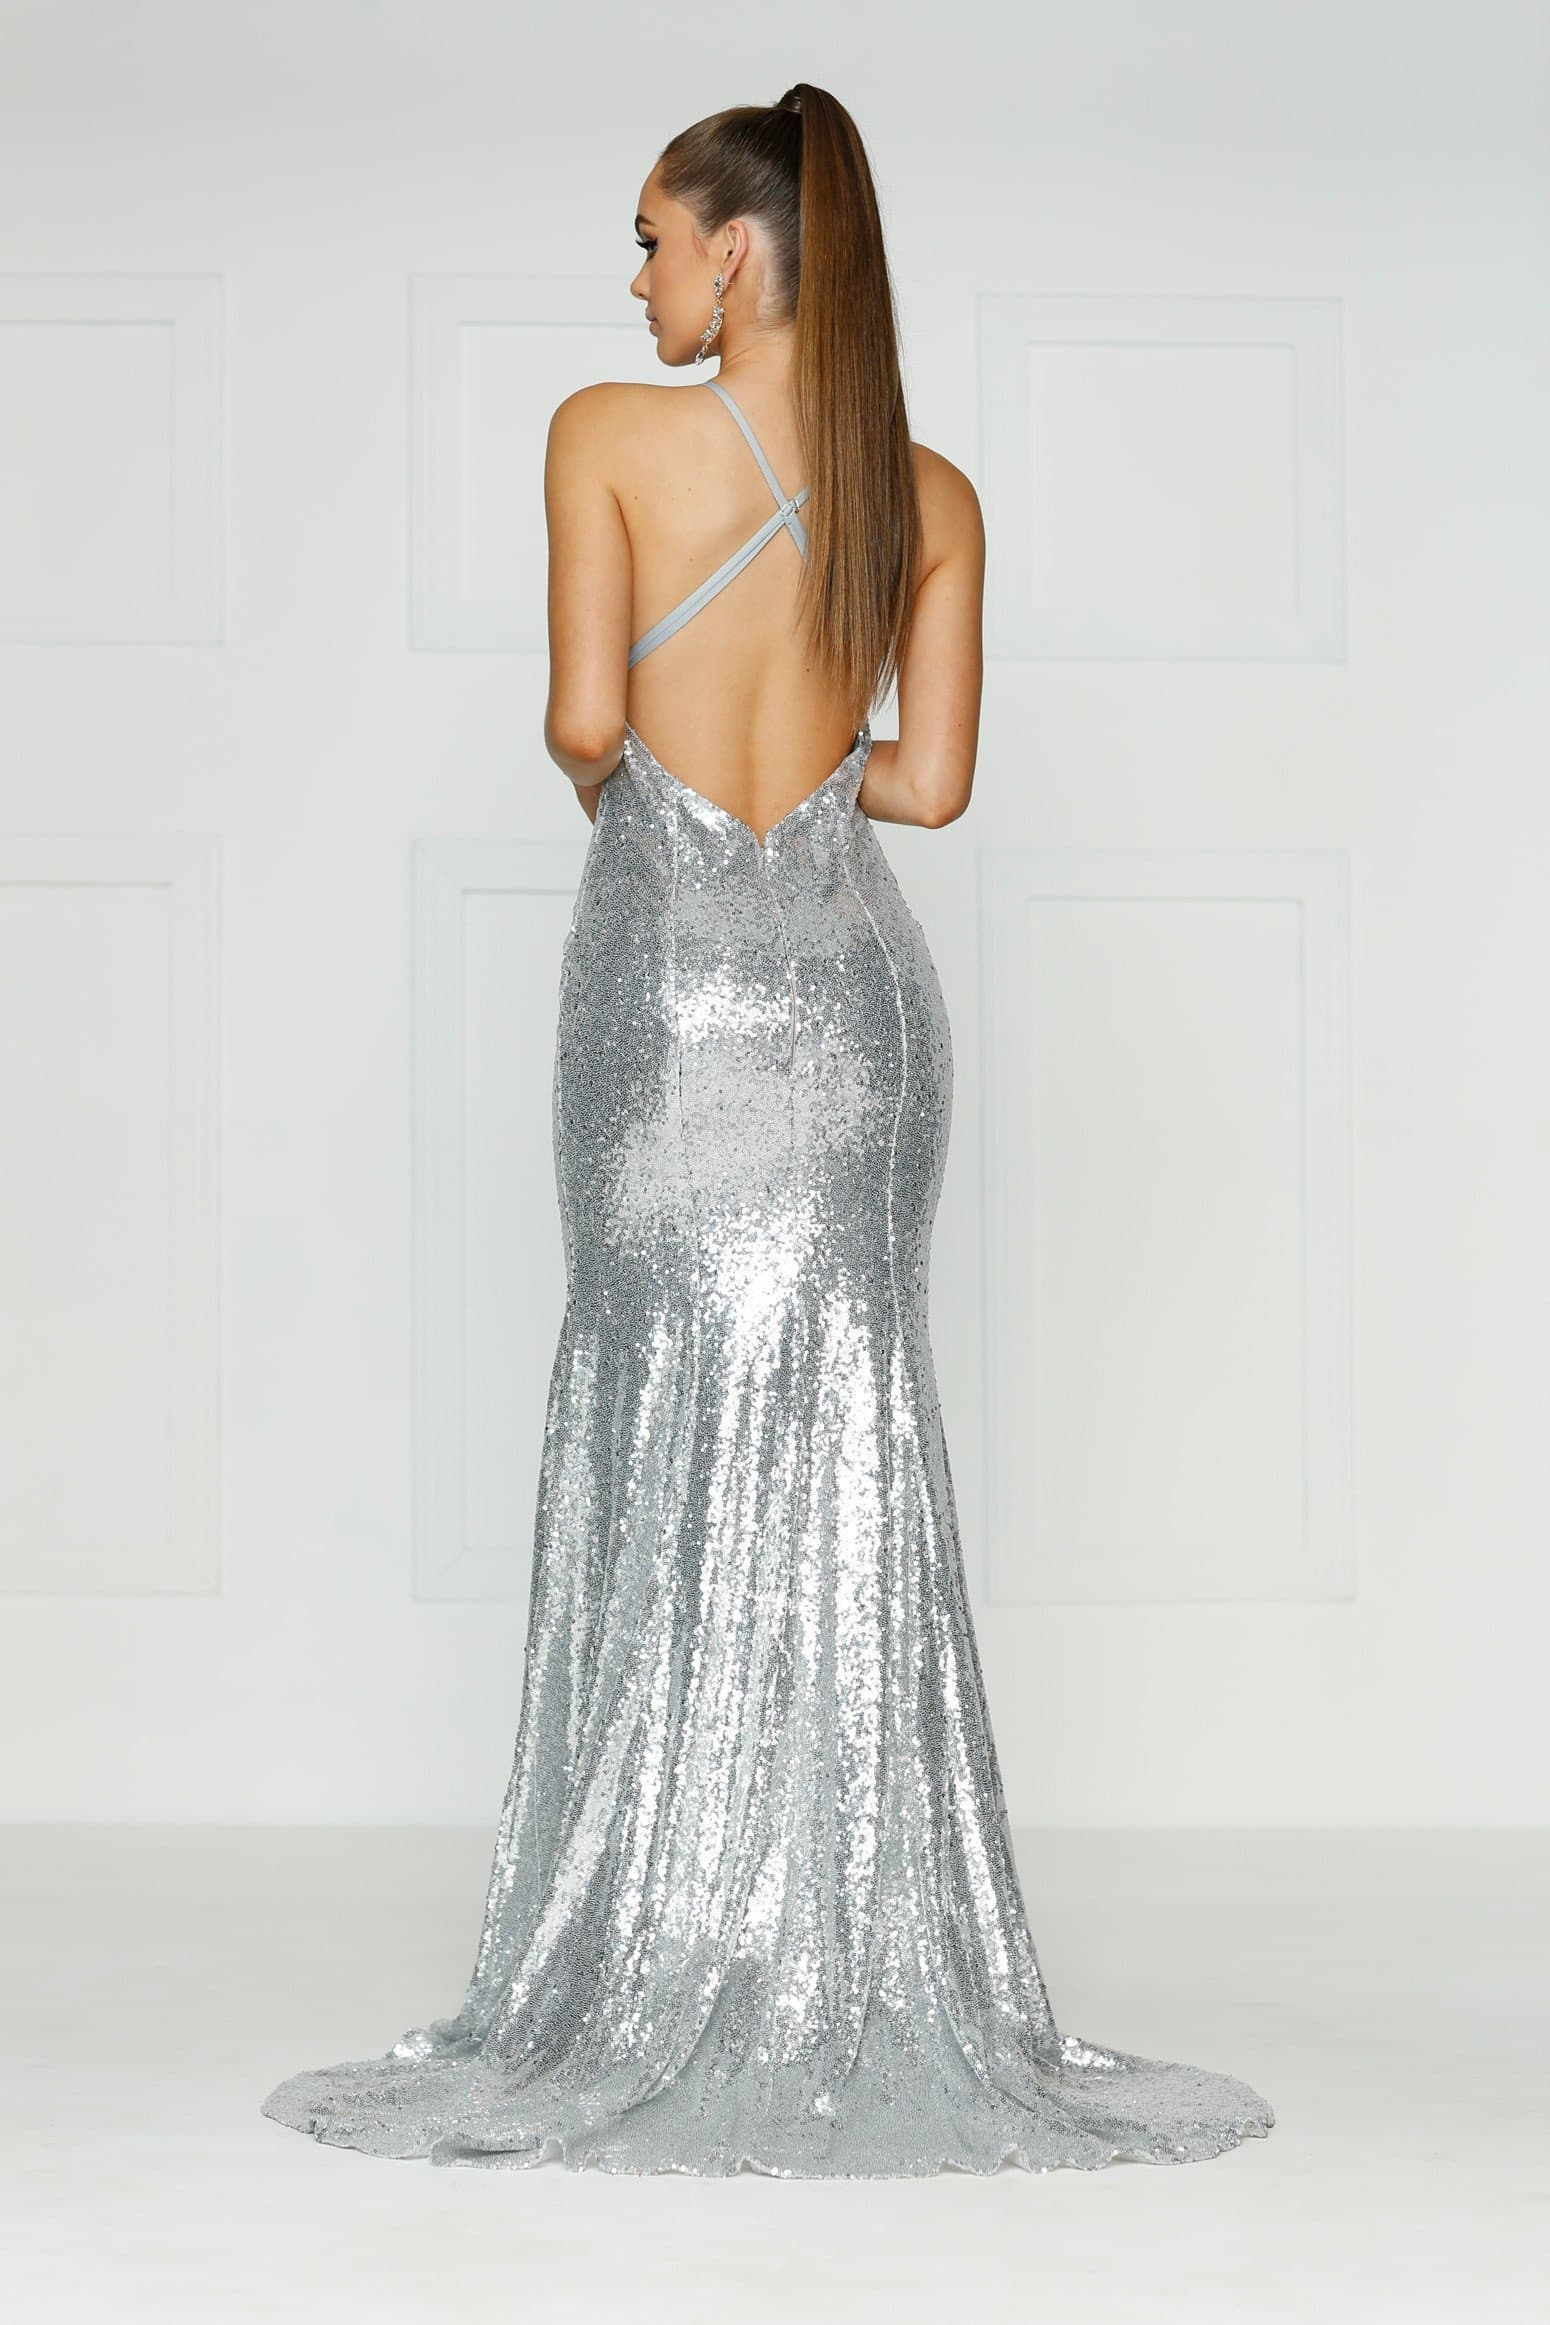 A&N Gigi- Silver Sequin Dress with V Neck and Criss Cross Back – A&N ...